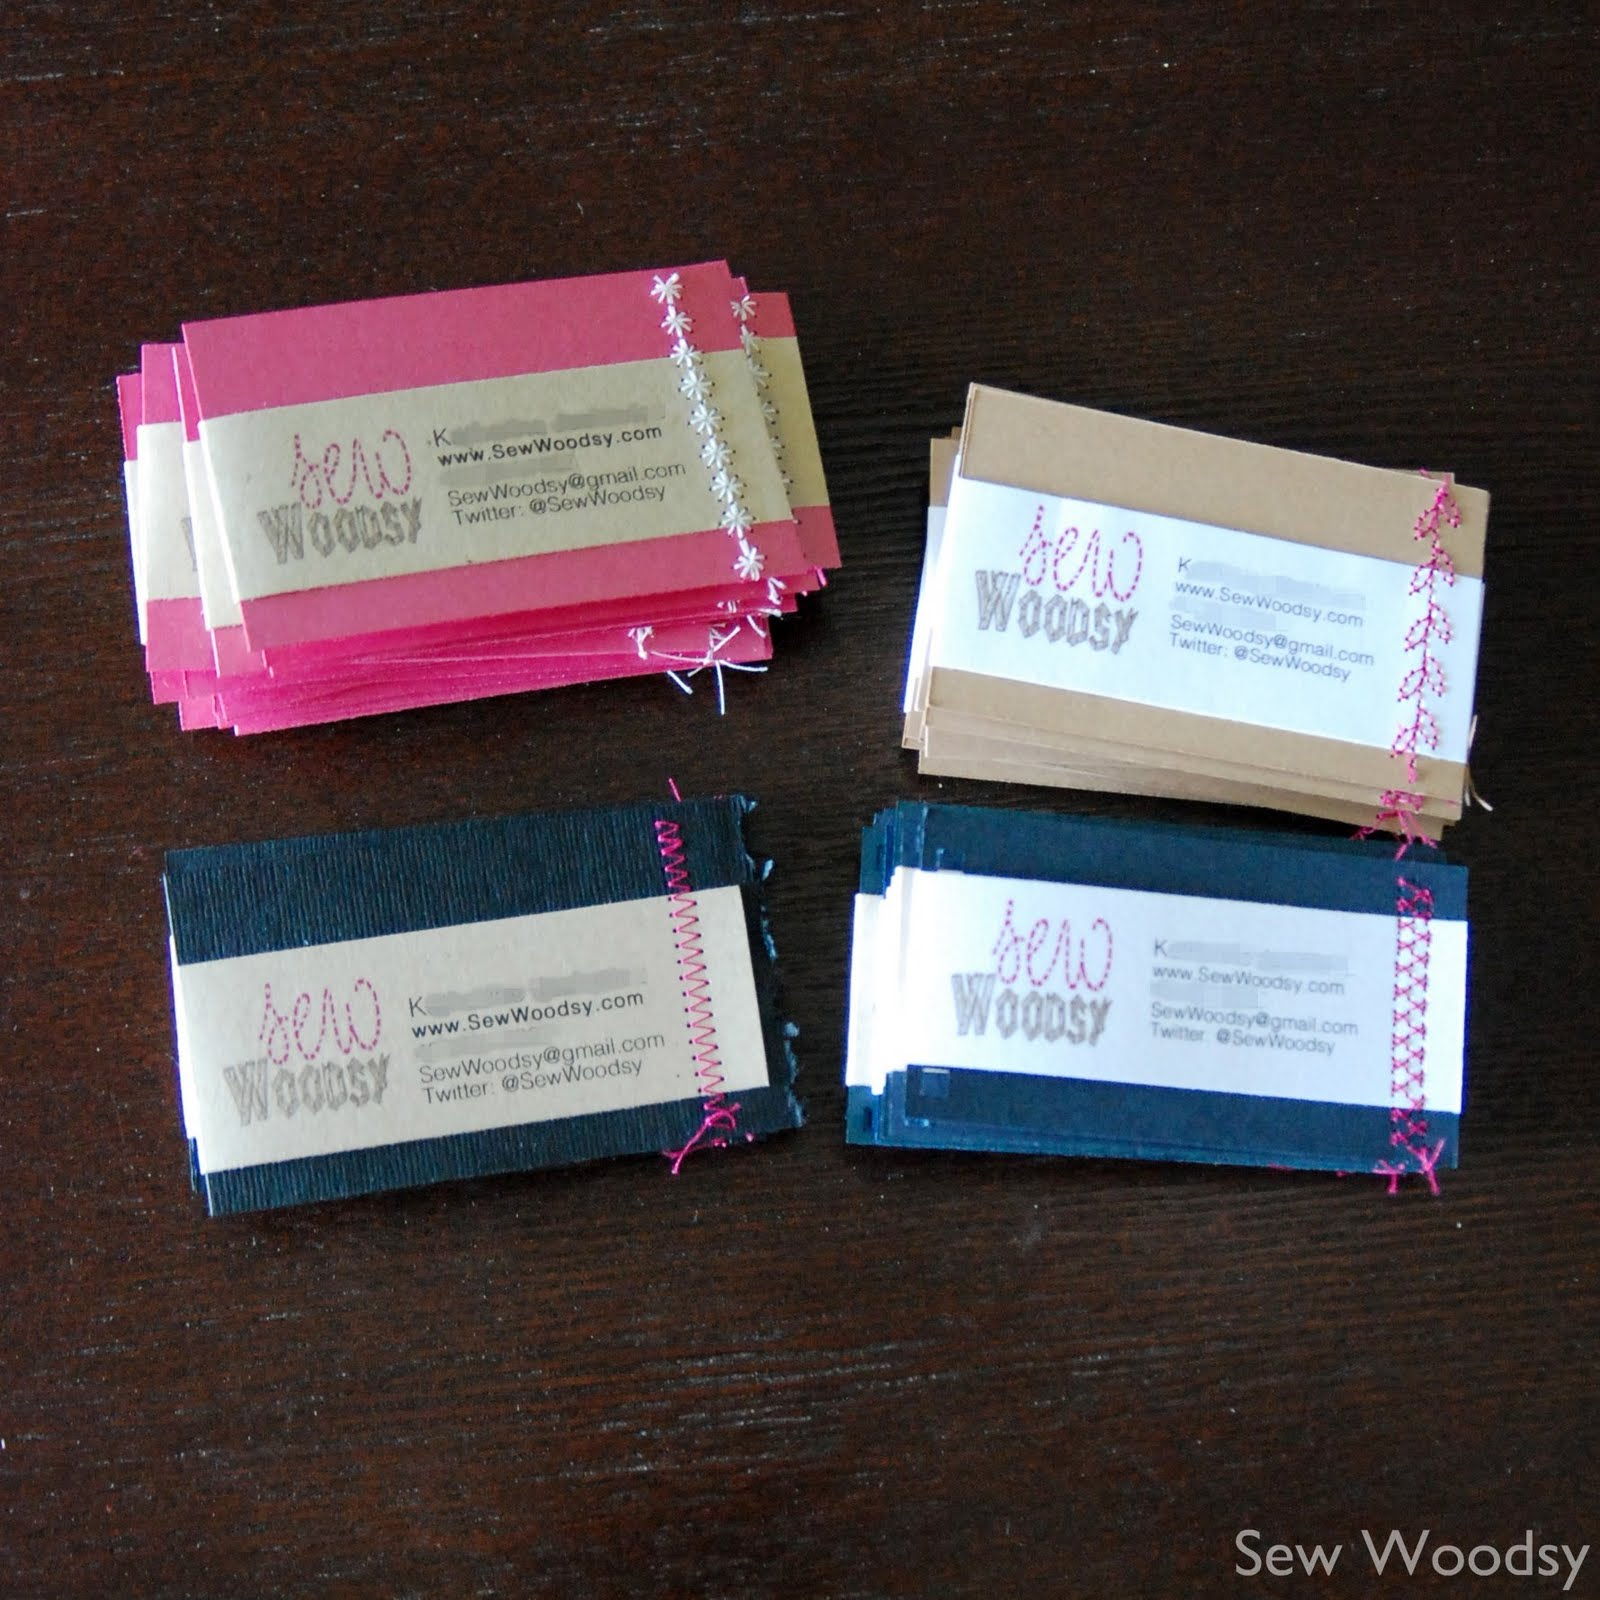 title> sewn homemade business cards {& cfl blog con recap}<title